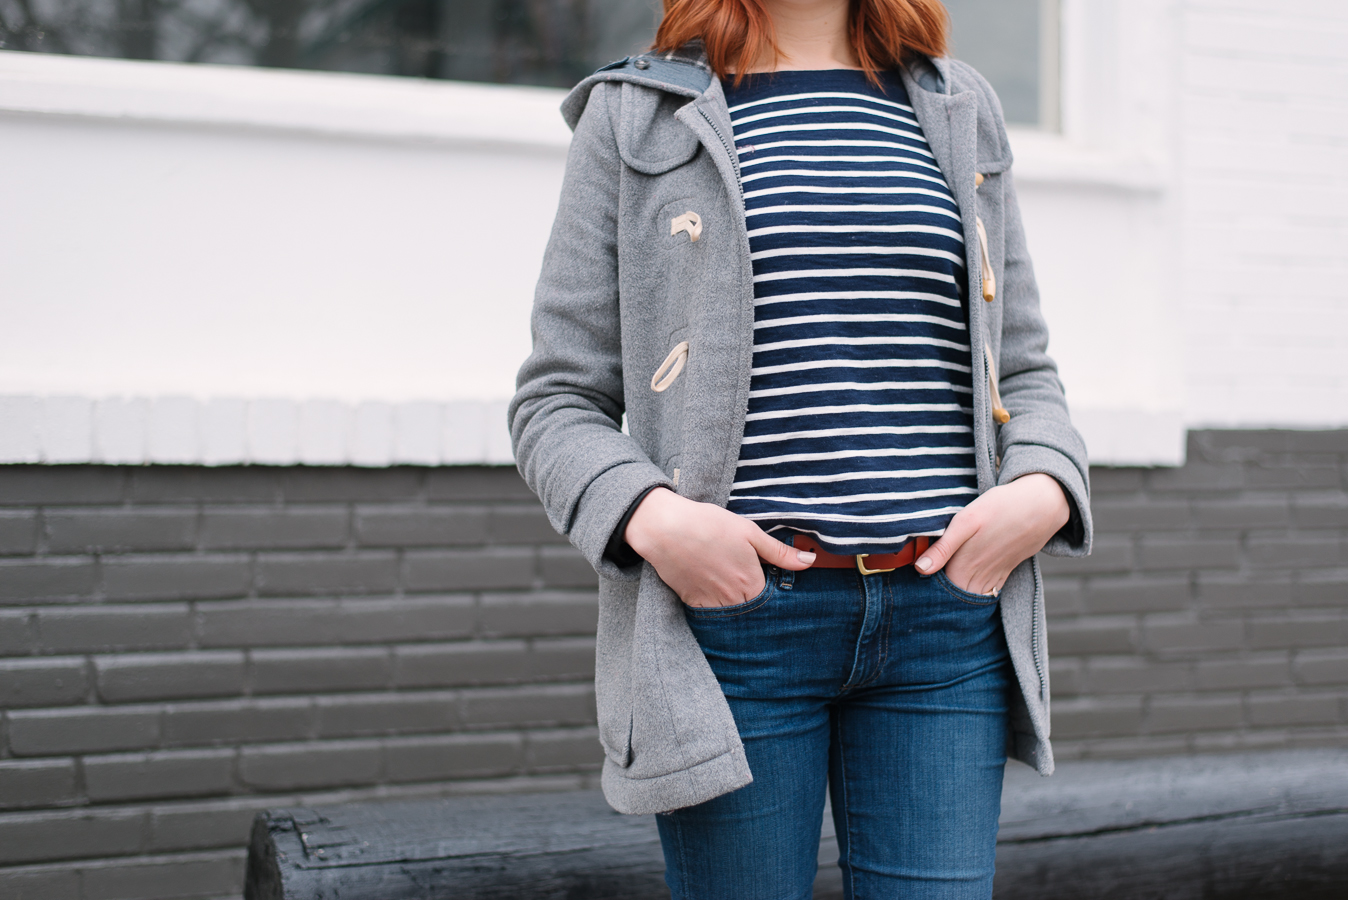 Beautyosaurus Lex-Alex Good-Stripes-j.crew-style blog-outfit-milwaukee-fashion blogger-blog-personal style-gap denim-gap-jeans-pea coat-winter-february-2016-10.jpg